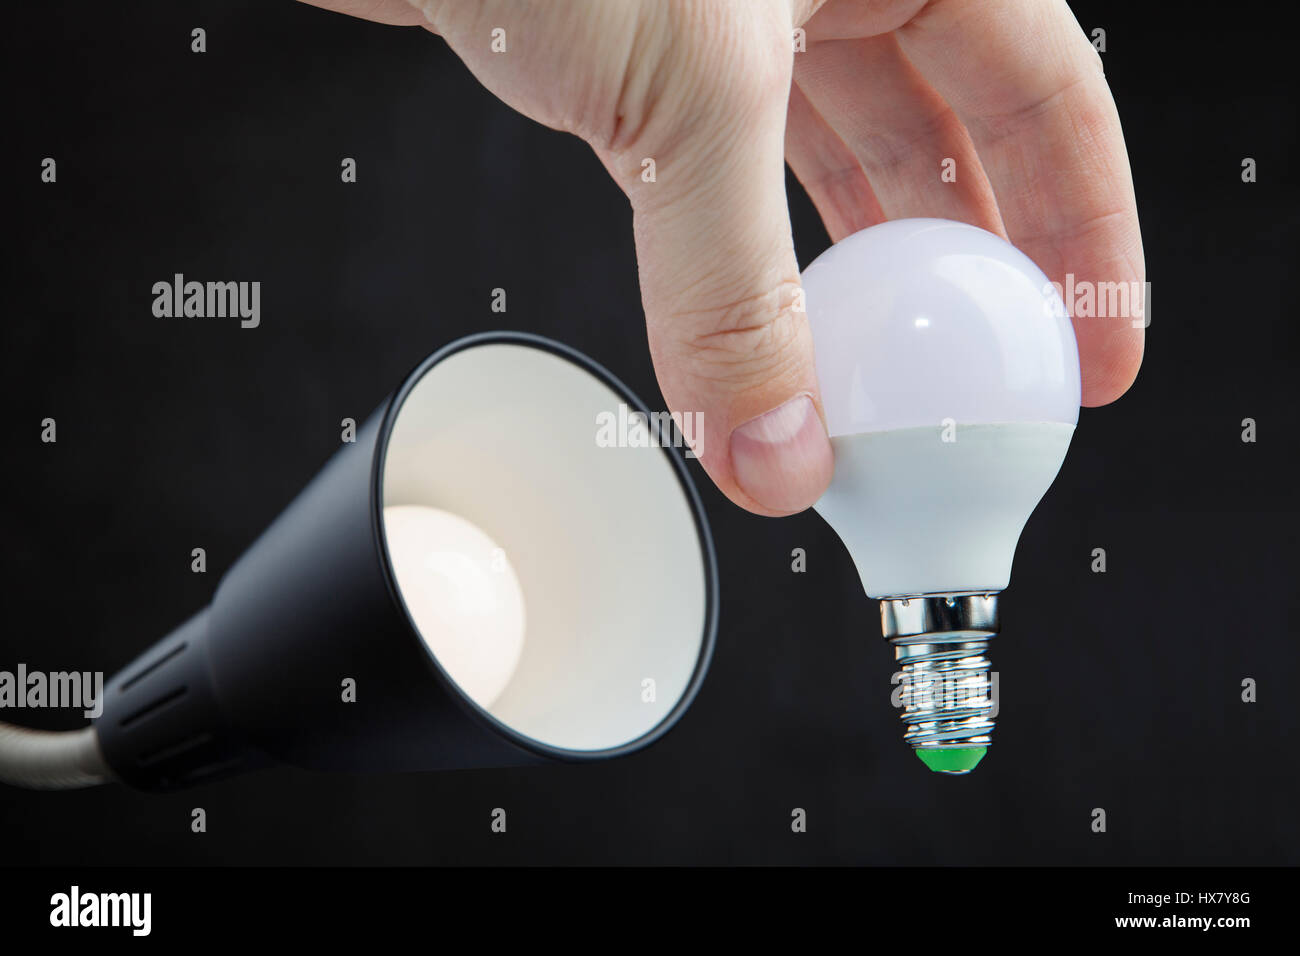 Hand holds a led lamp low energy consumption the exchange of light hand holds a led lamp low energy consumption the exchange of light bulbs in floor lamp dark background aloadofball Gallery